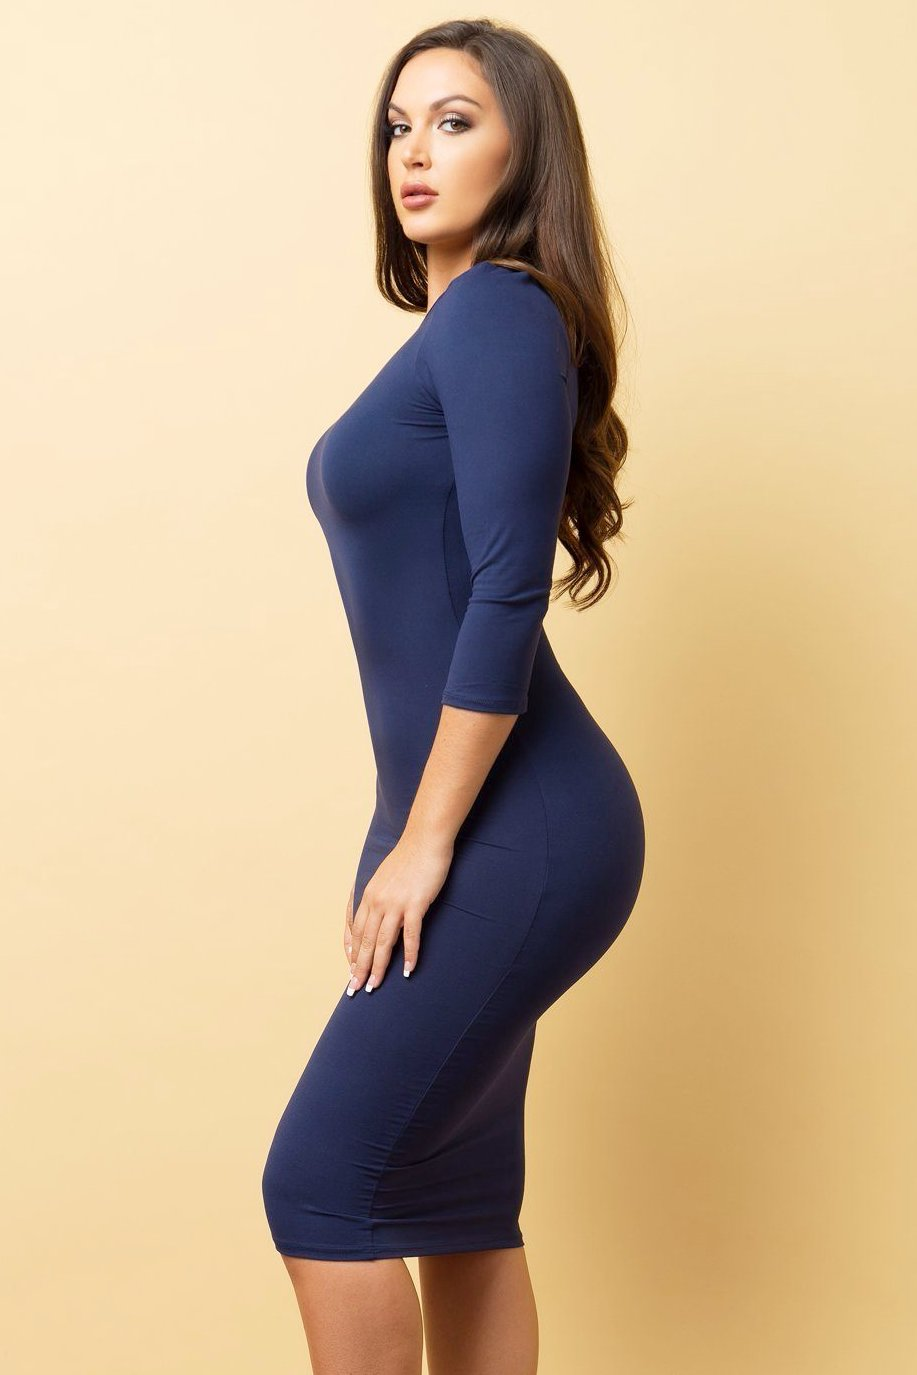 Dress - RESTOCKED Carol Dress - Navy Blue